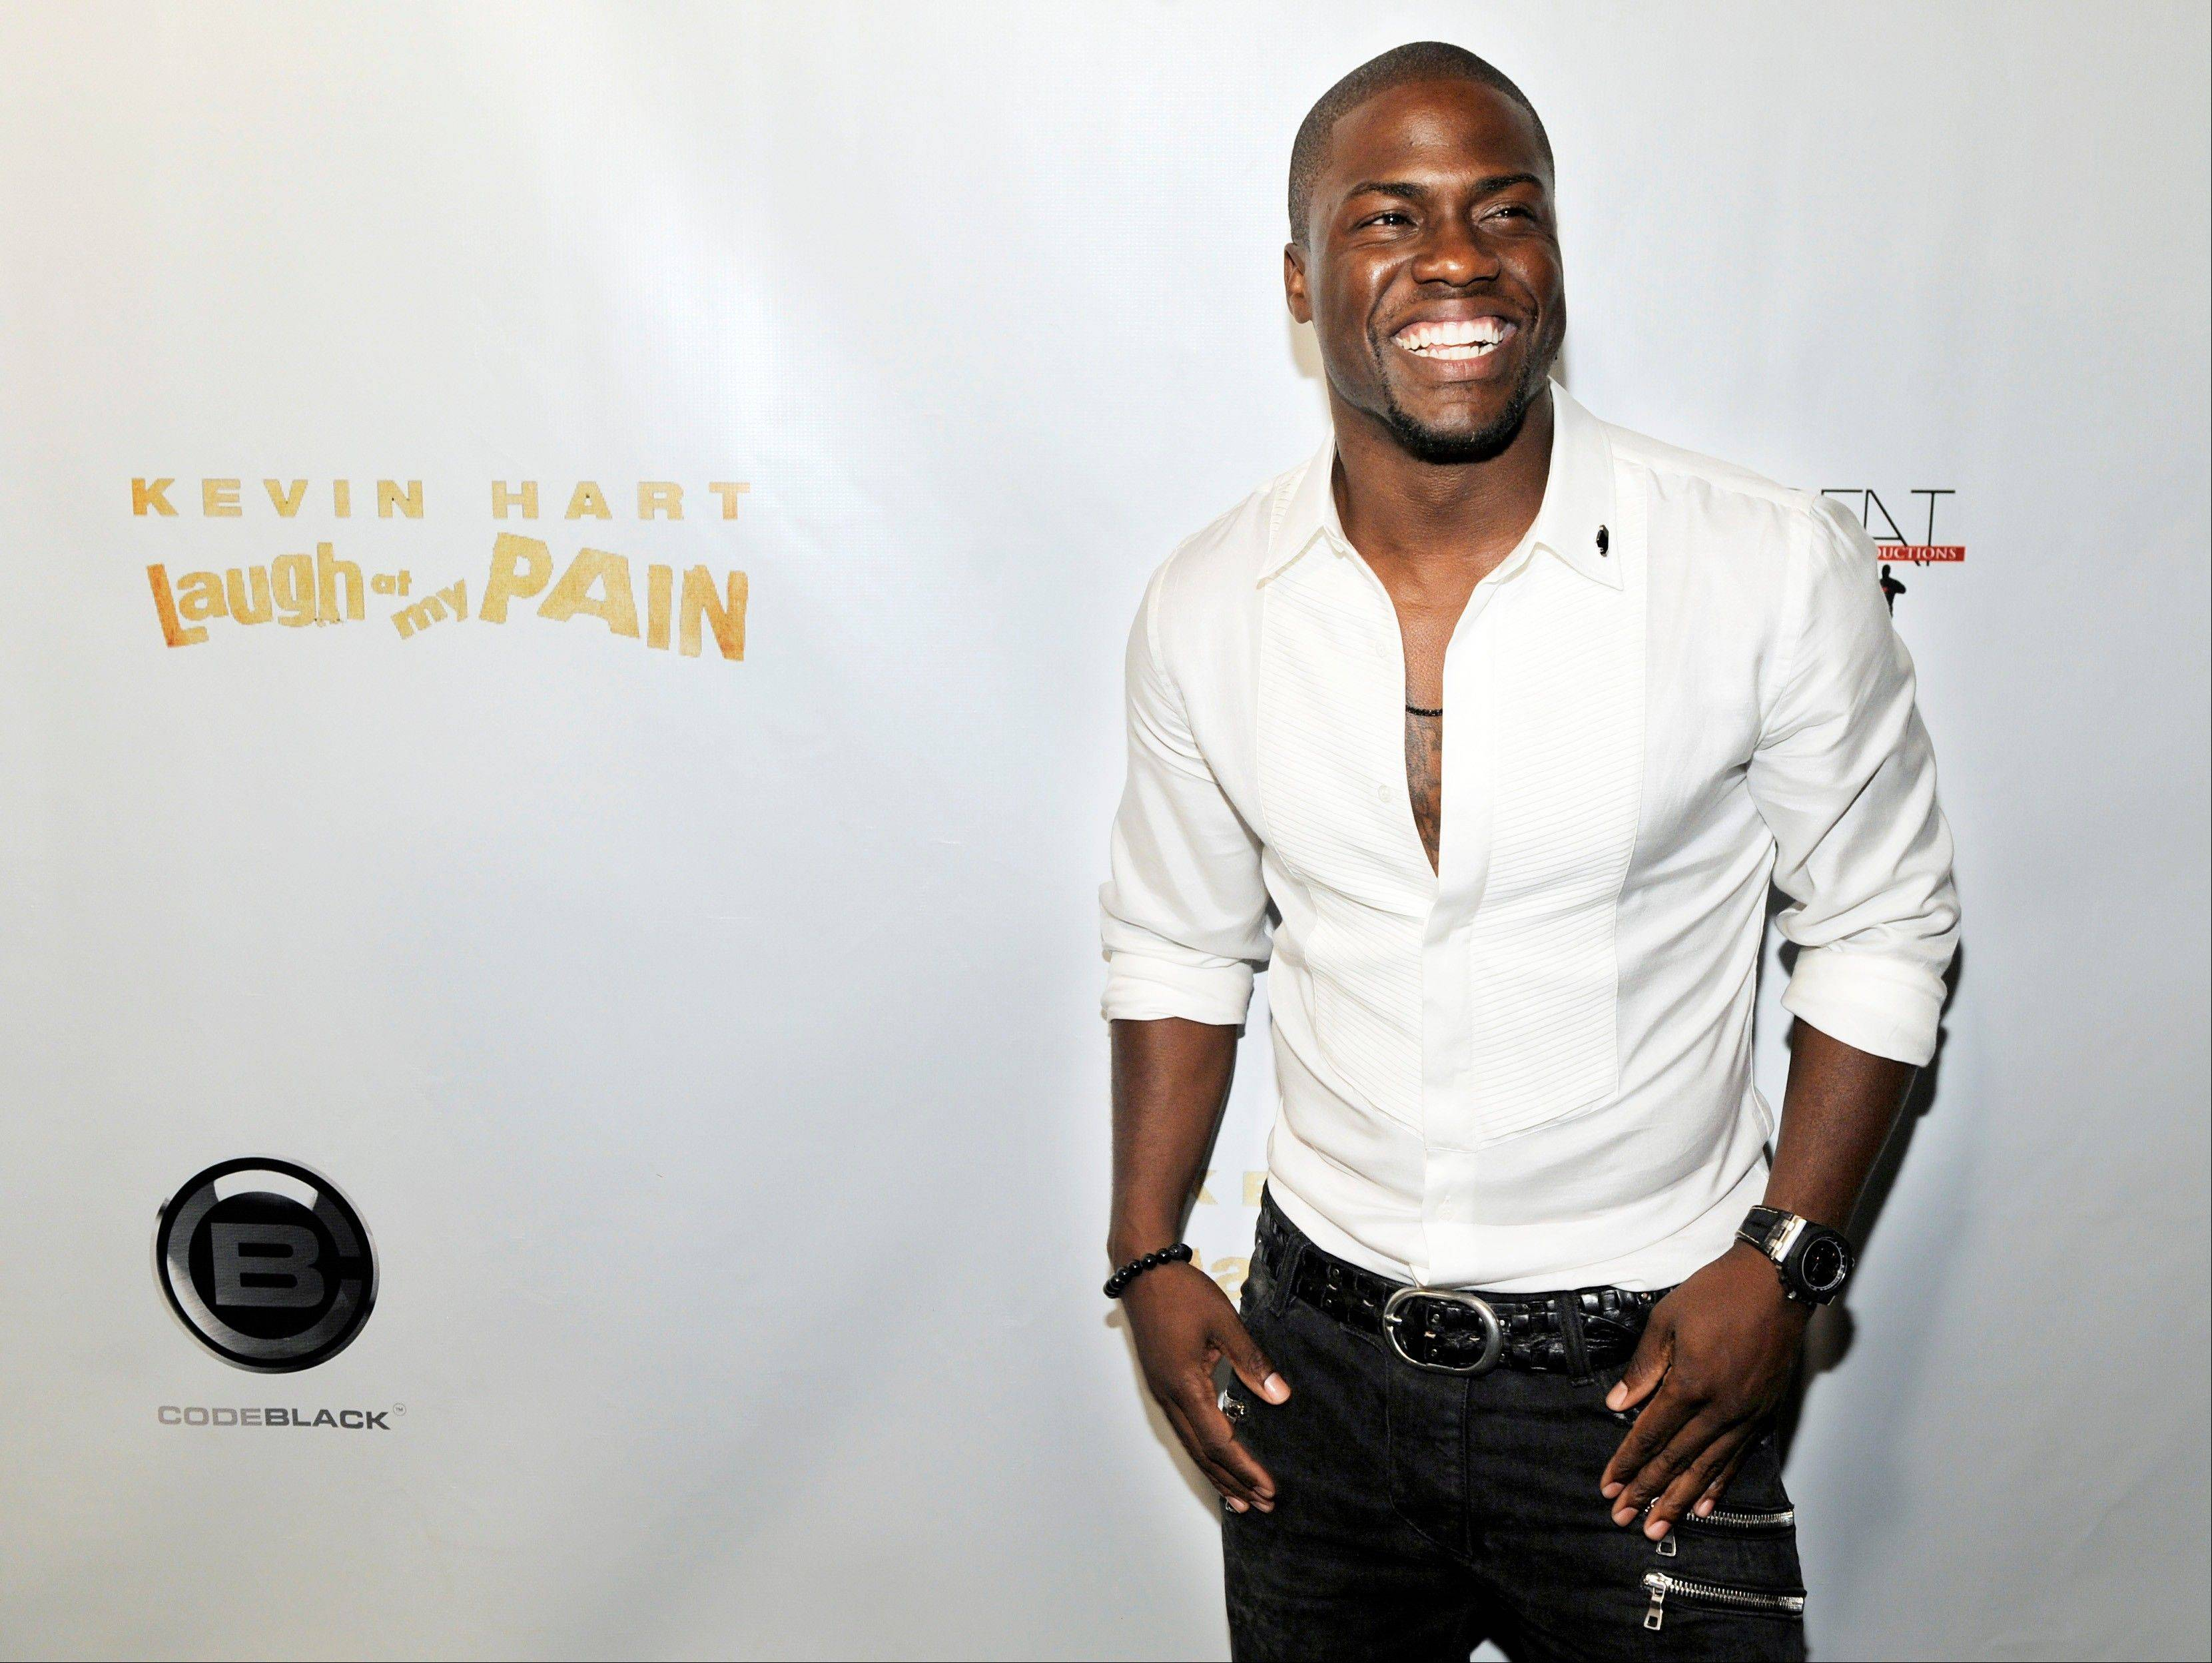 "Kevin Hart, star of the comedy concert film ""Laugh at My Pain,"" which opened Friday at the Yorktown 17 in Lombard and River East 21 in Chicago, has found a way to craft his comedy act around his most shameful situations, turning them into laughable ones."